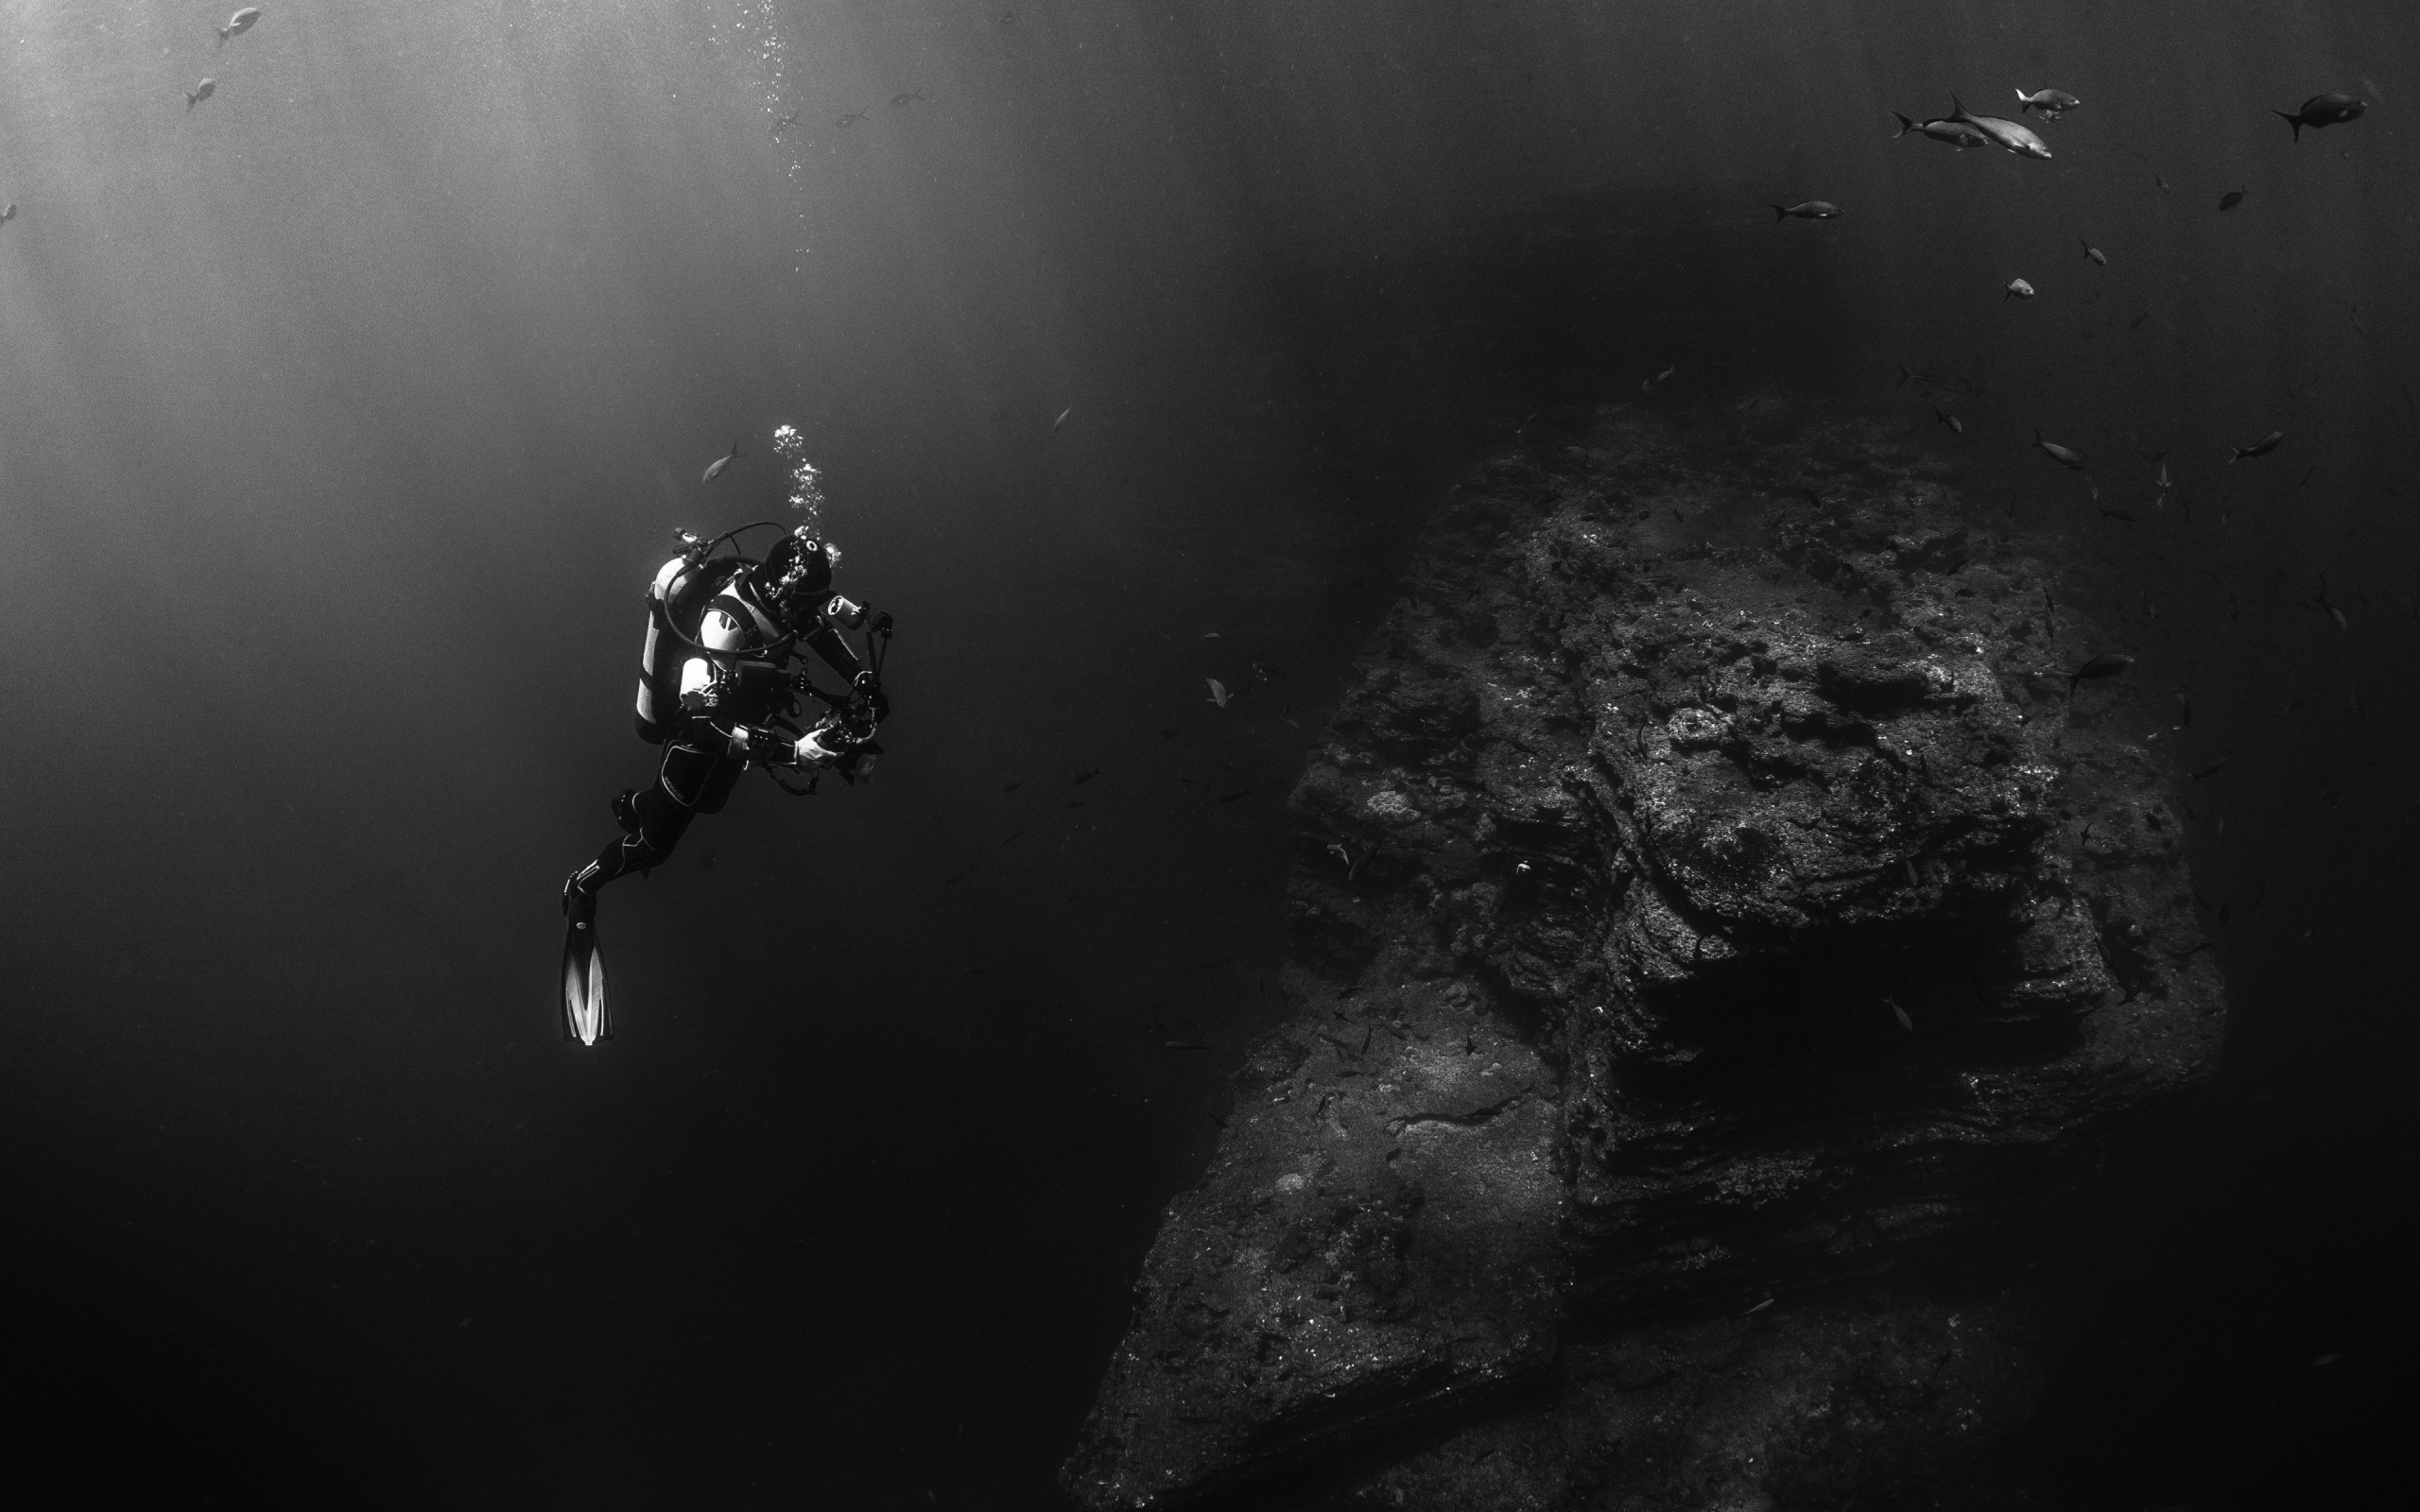 Diver in the Pacific Ocean wallpaper 2560x1600